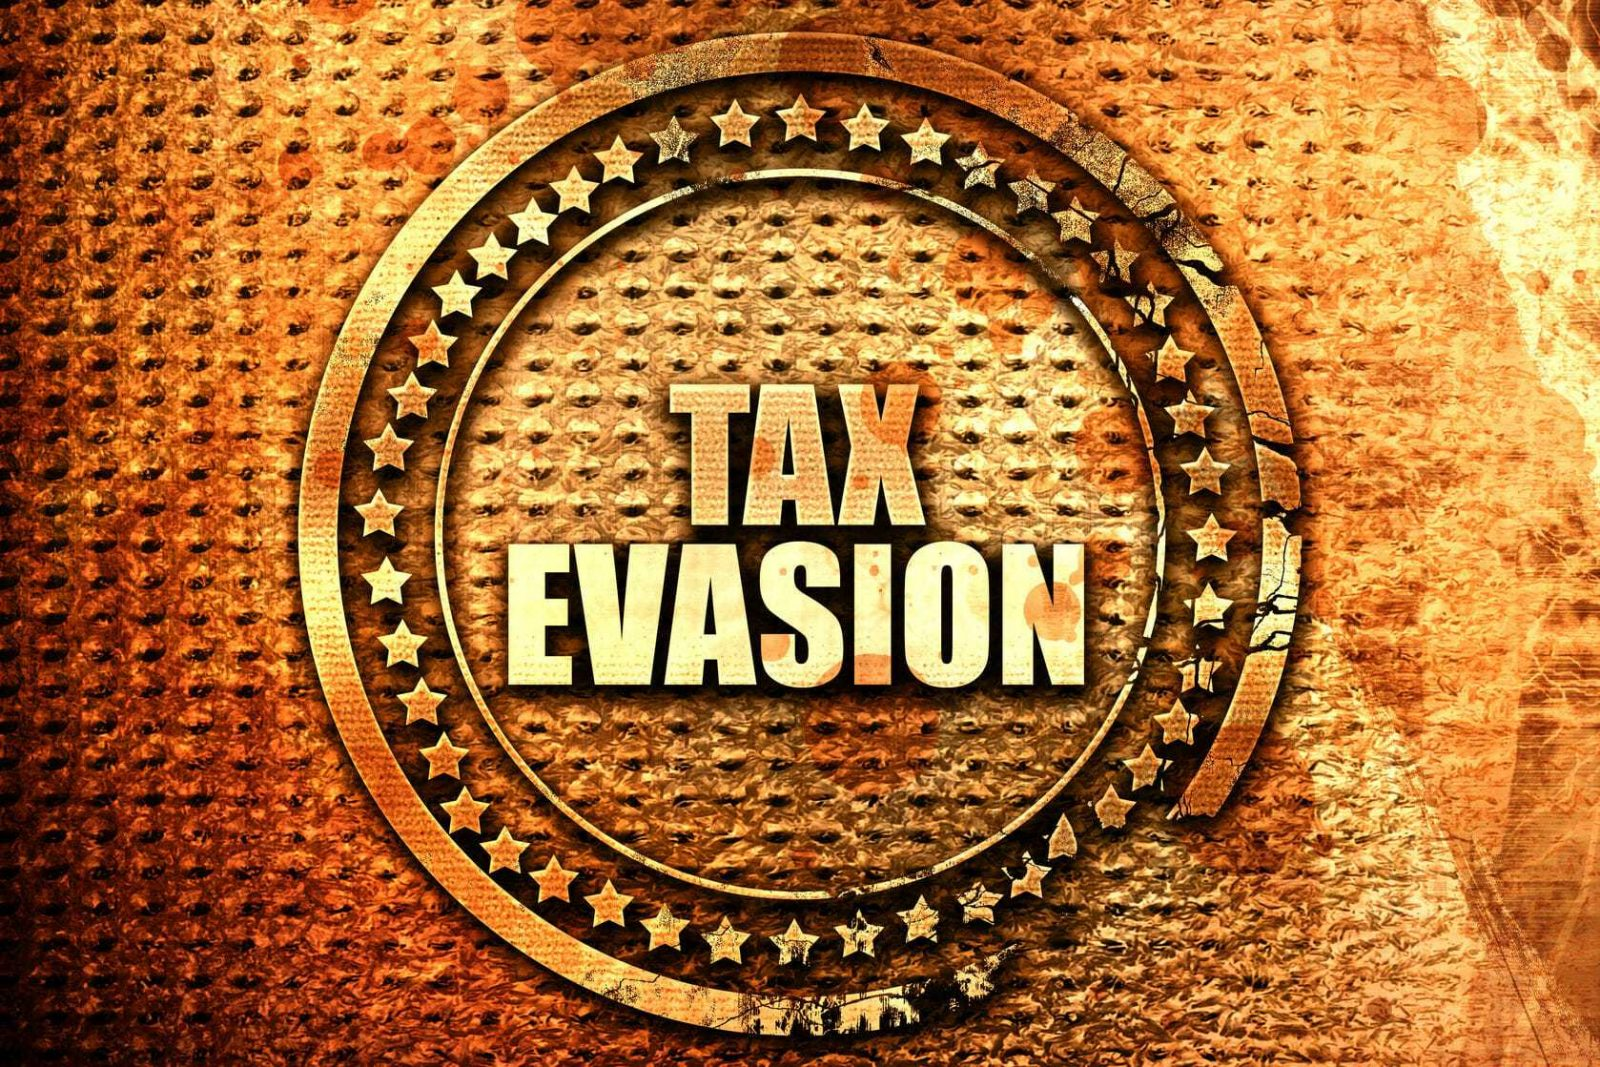 Husband Pleads Guilty to Tax Evasion - Wife's Charges Dropped